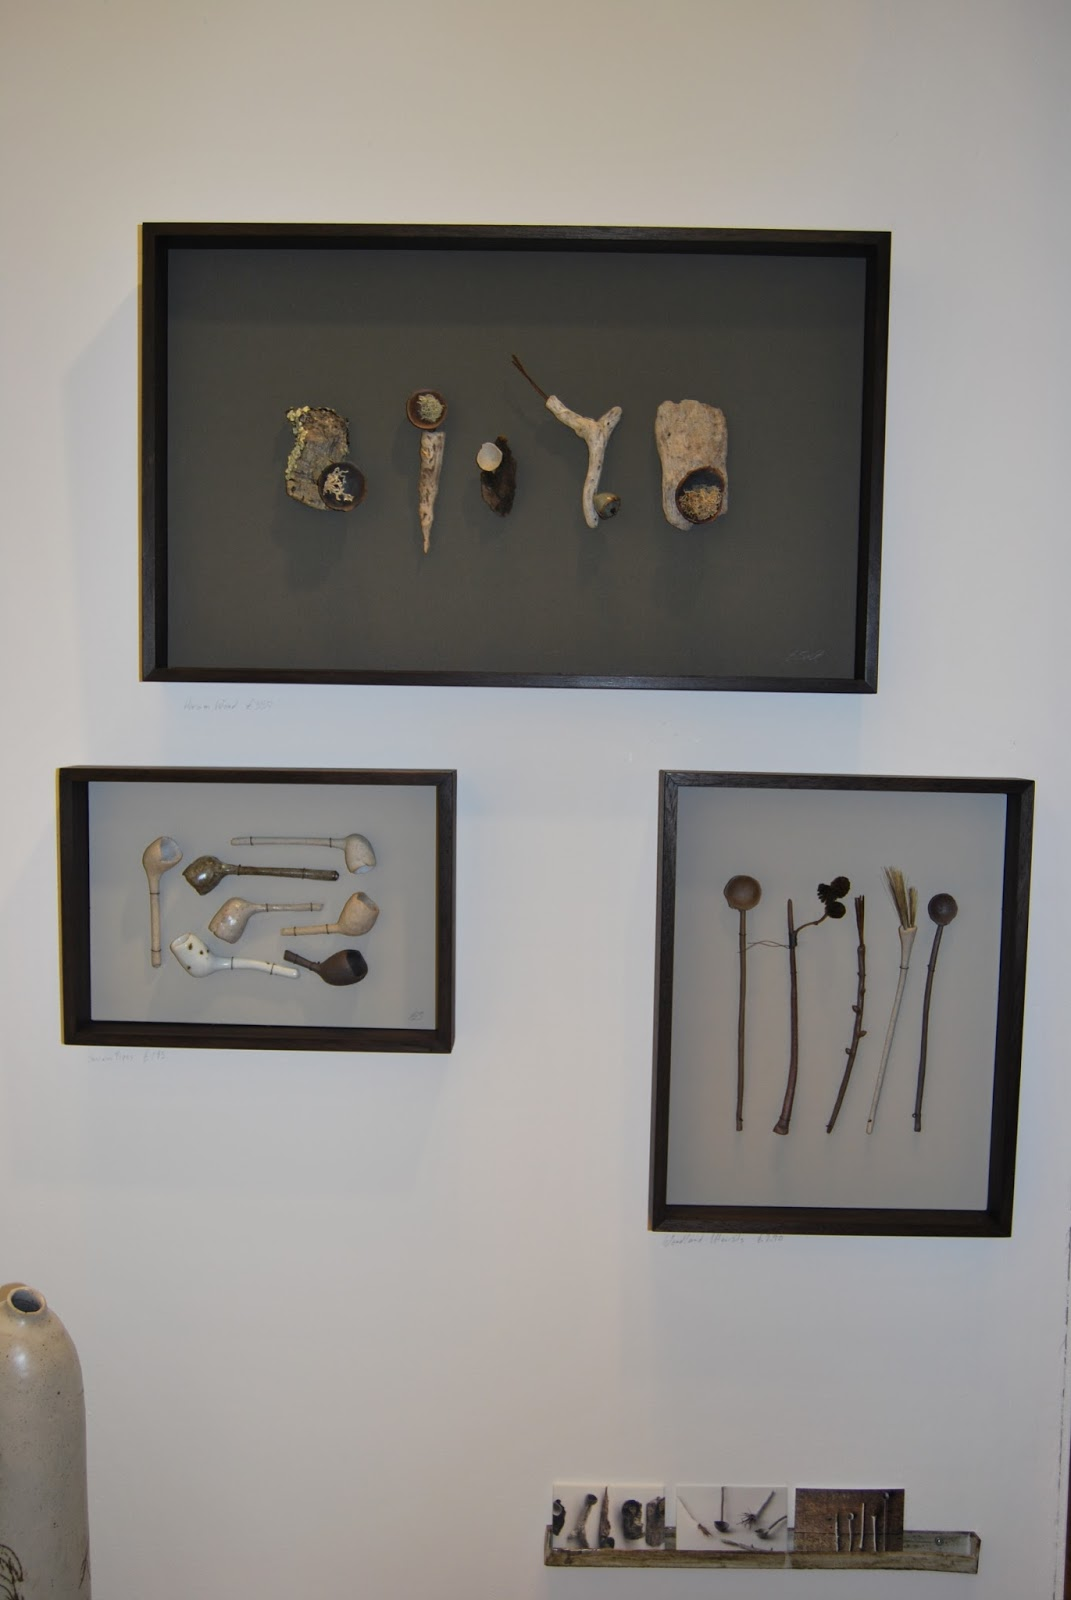 Elaine Bolt at Brighton Art Fair 2015, photo by Modern Bric a Brac